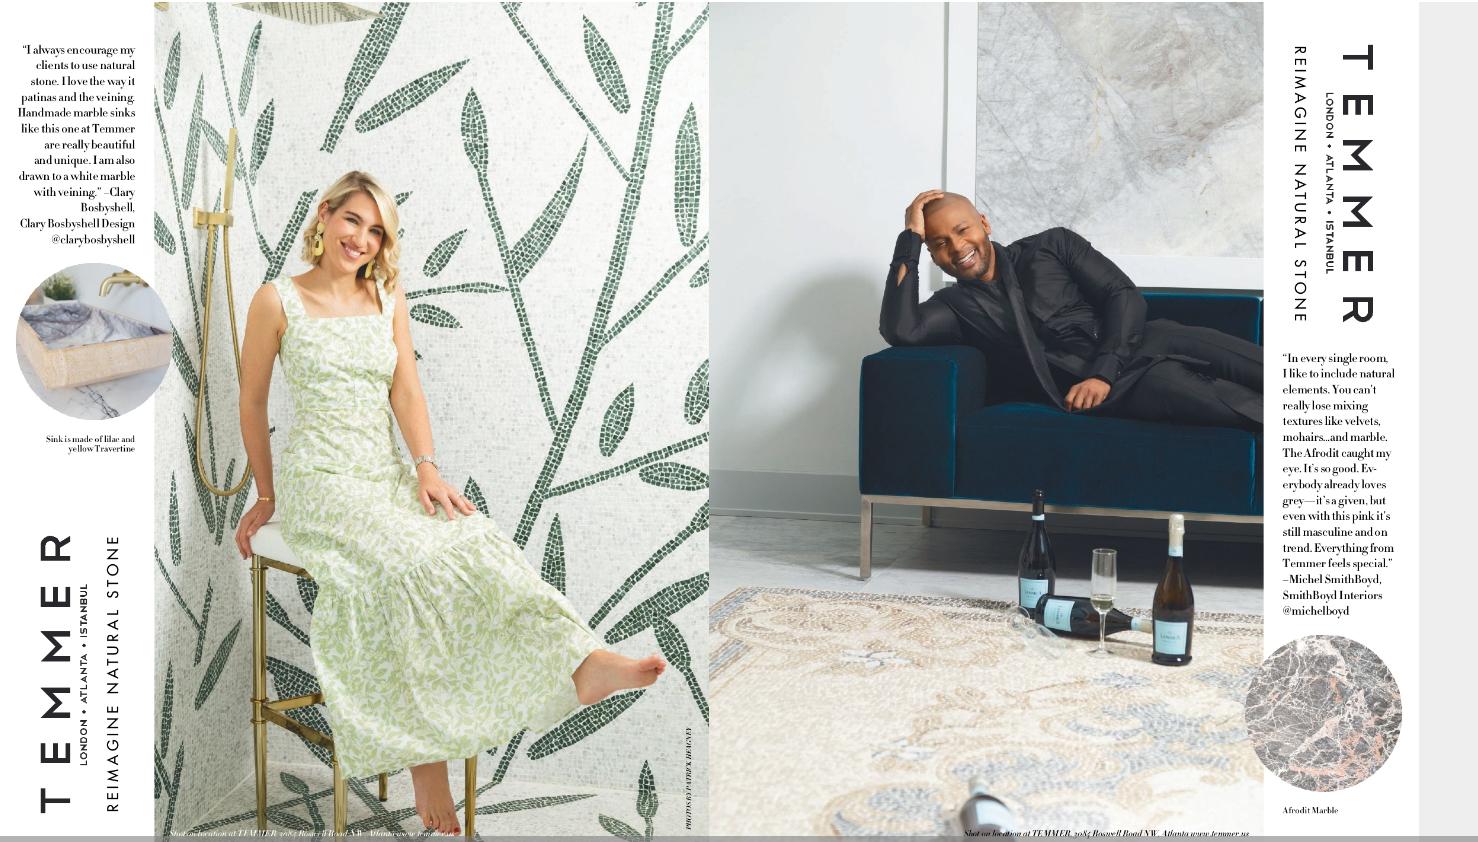 Patrick Heagney photographs Michel Smith Boyd and Clary Bosbyshell for Temmer Marble